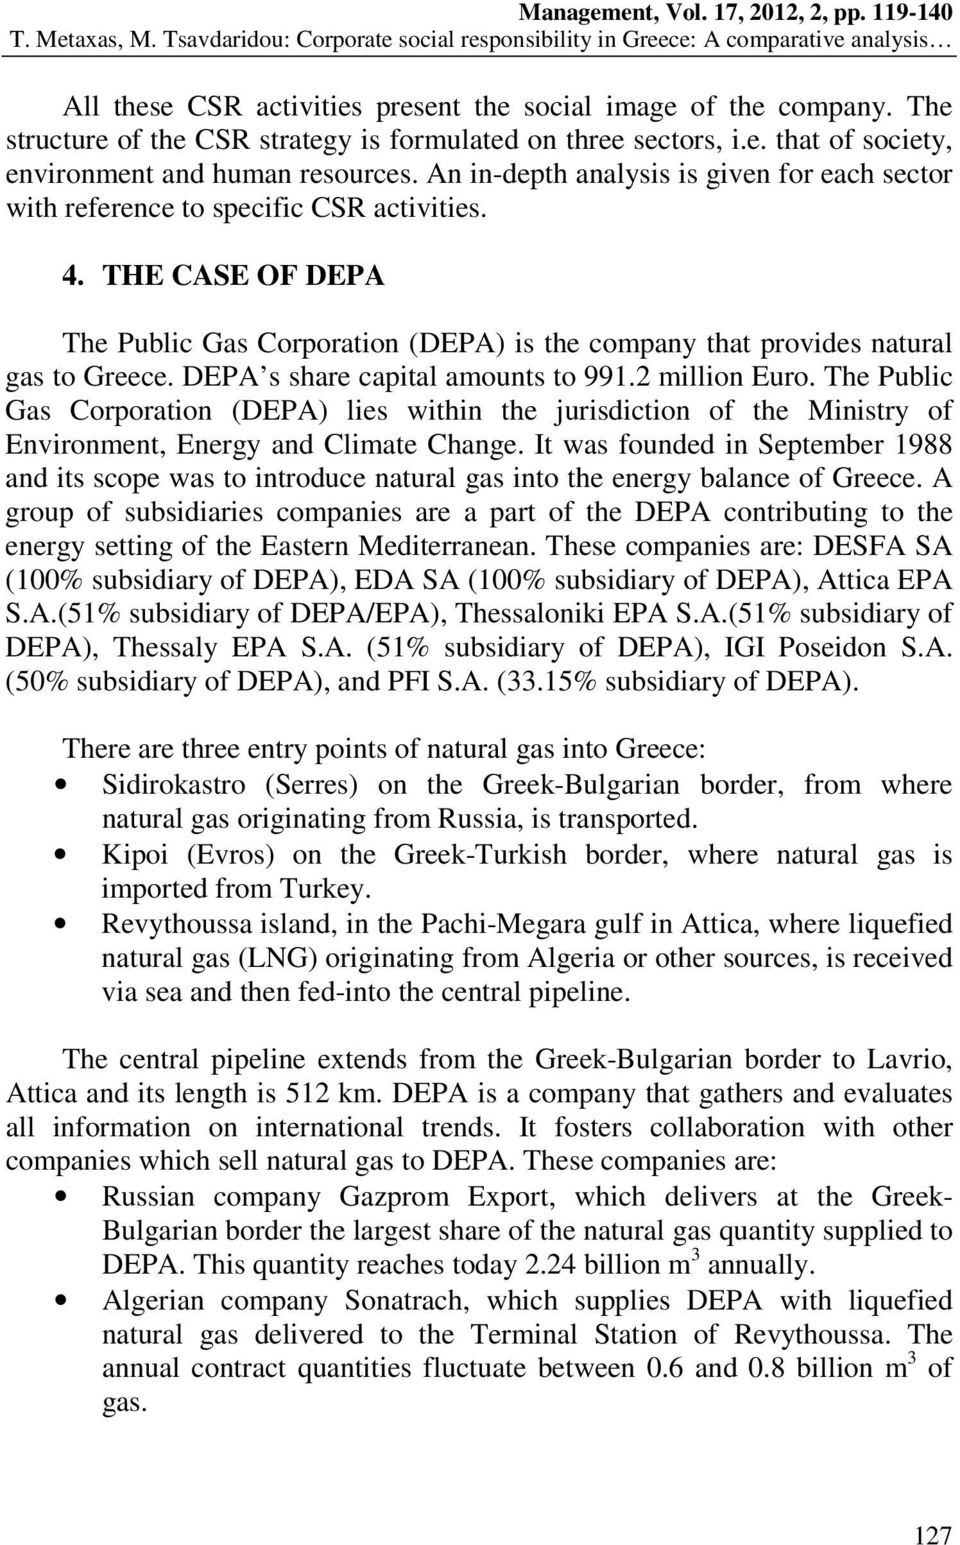 DEPA s share capital amounts to 991.2 million Euro. The Public Gas Corporation (DEPA) lies within the jurisdiction of the Ministry of Environment, Energy and Climate Change.